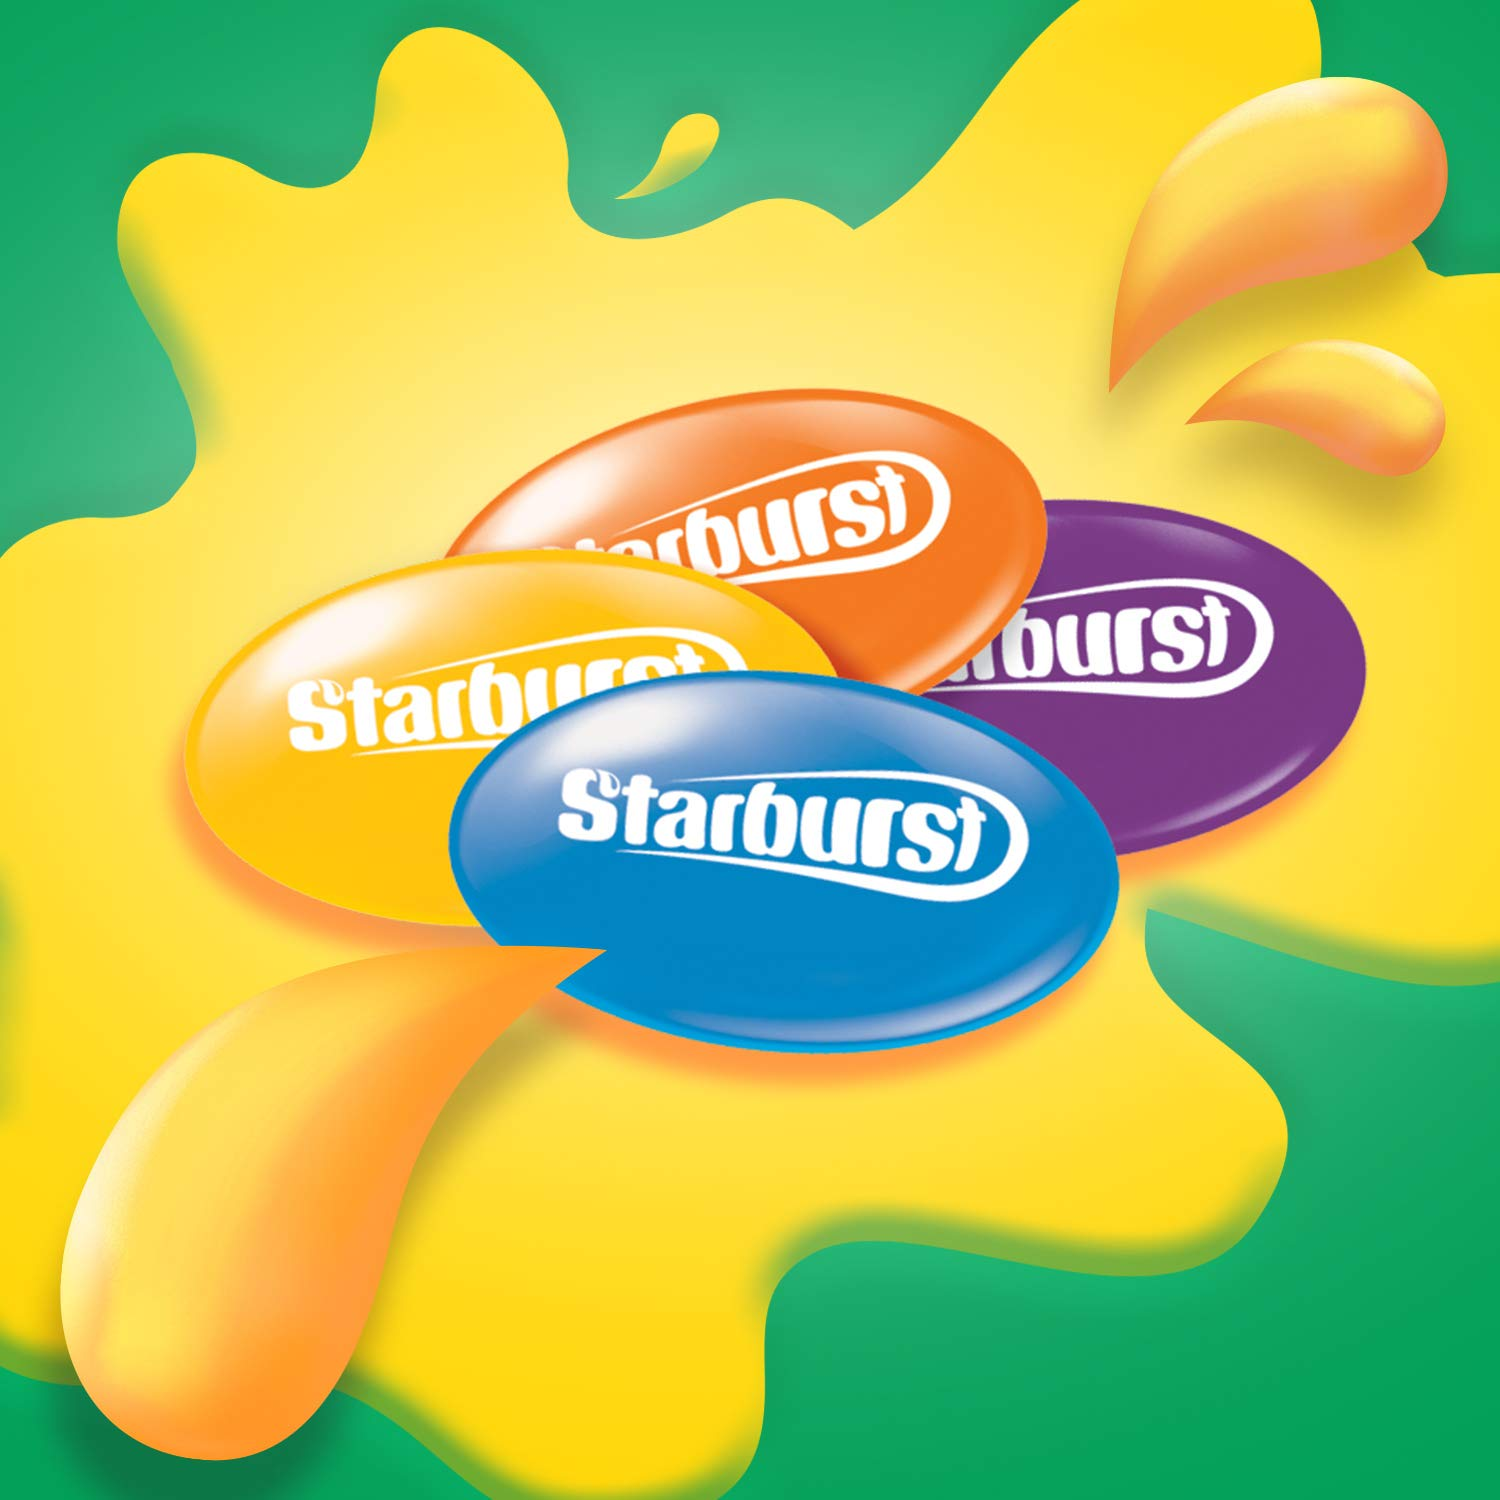 Starburst Easter Duos Jelly Beans Candy, 13 Ounce (Pack of 12) by Starburst (Image #2)